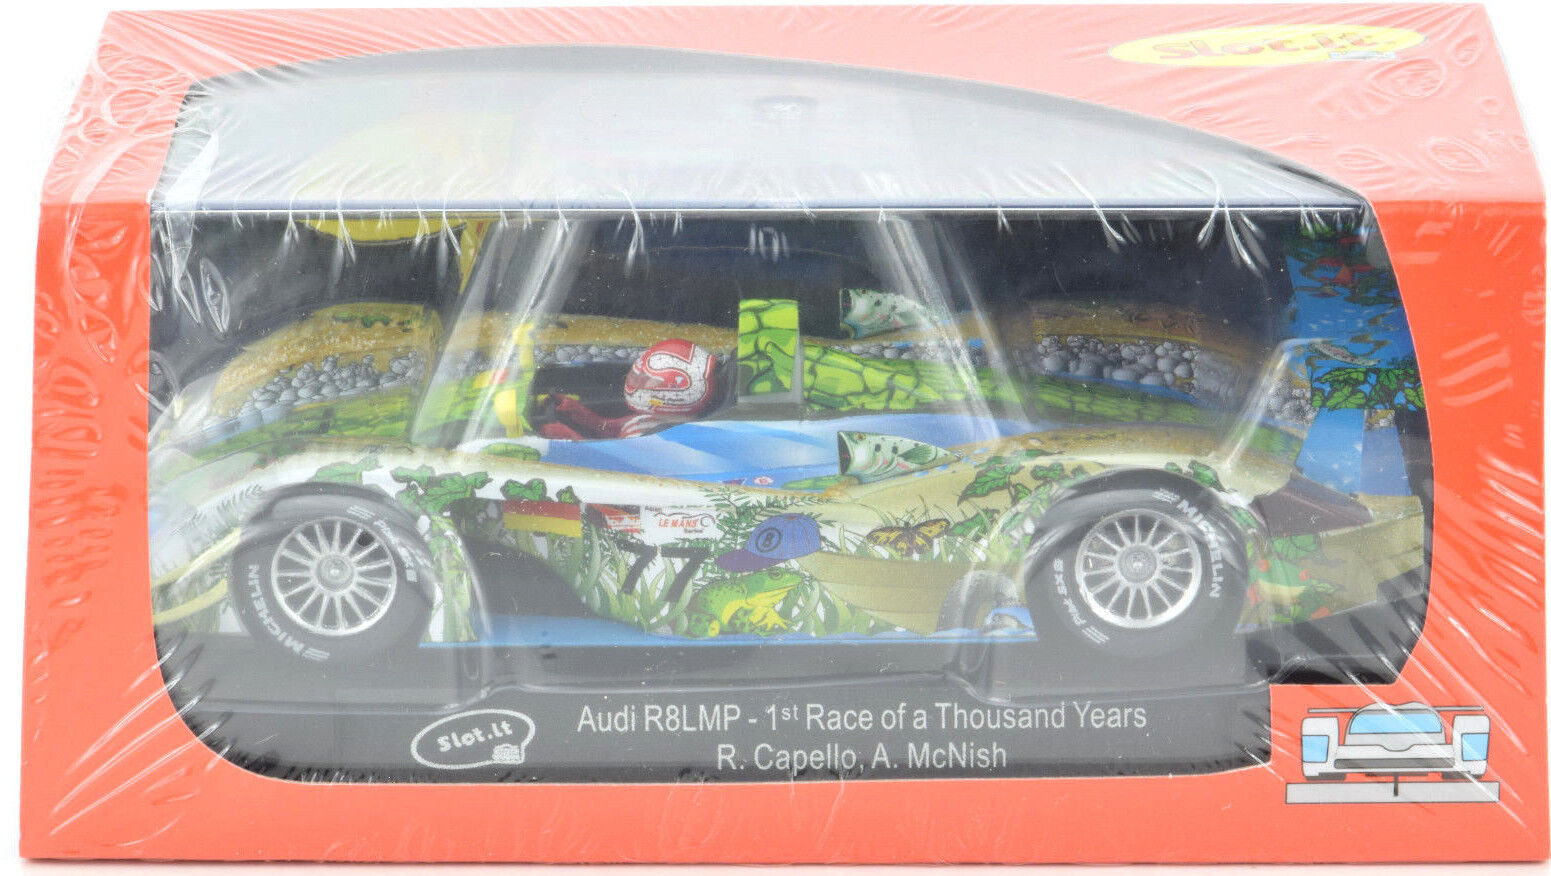 SLOT IT I R8 LMP - 1st Race de mille ans échelle 1 32 Slot Car CA33A